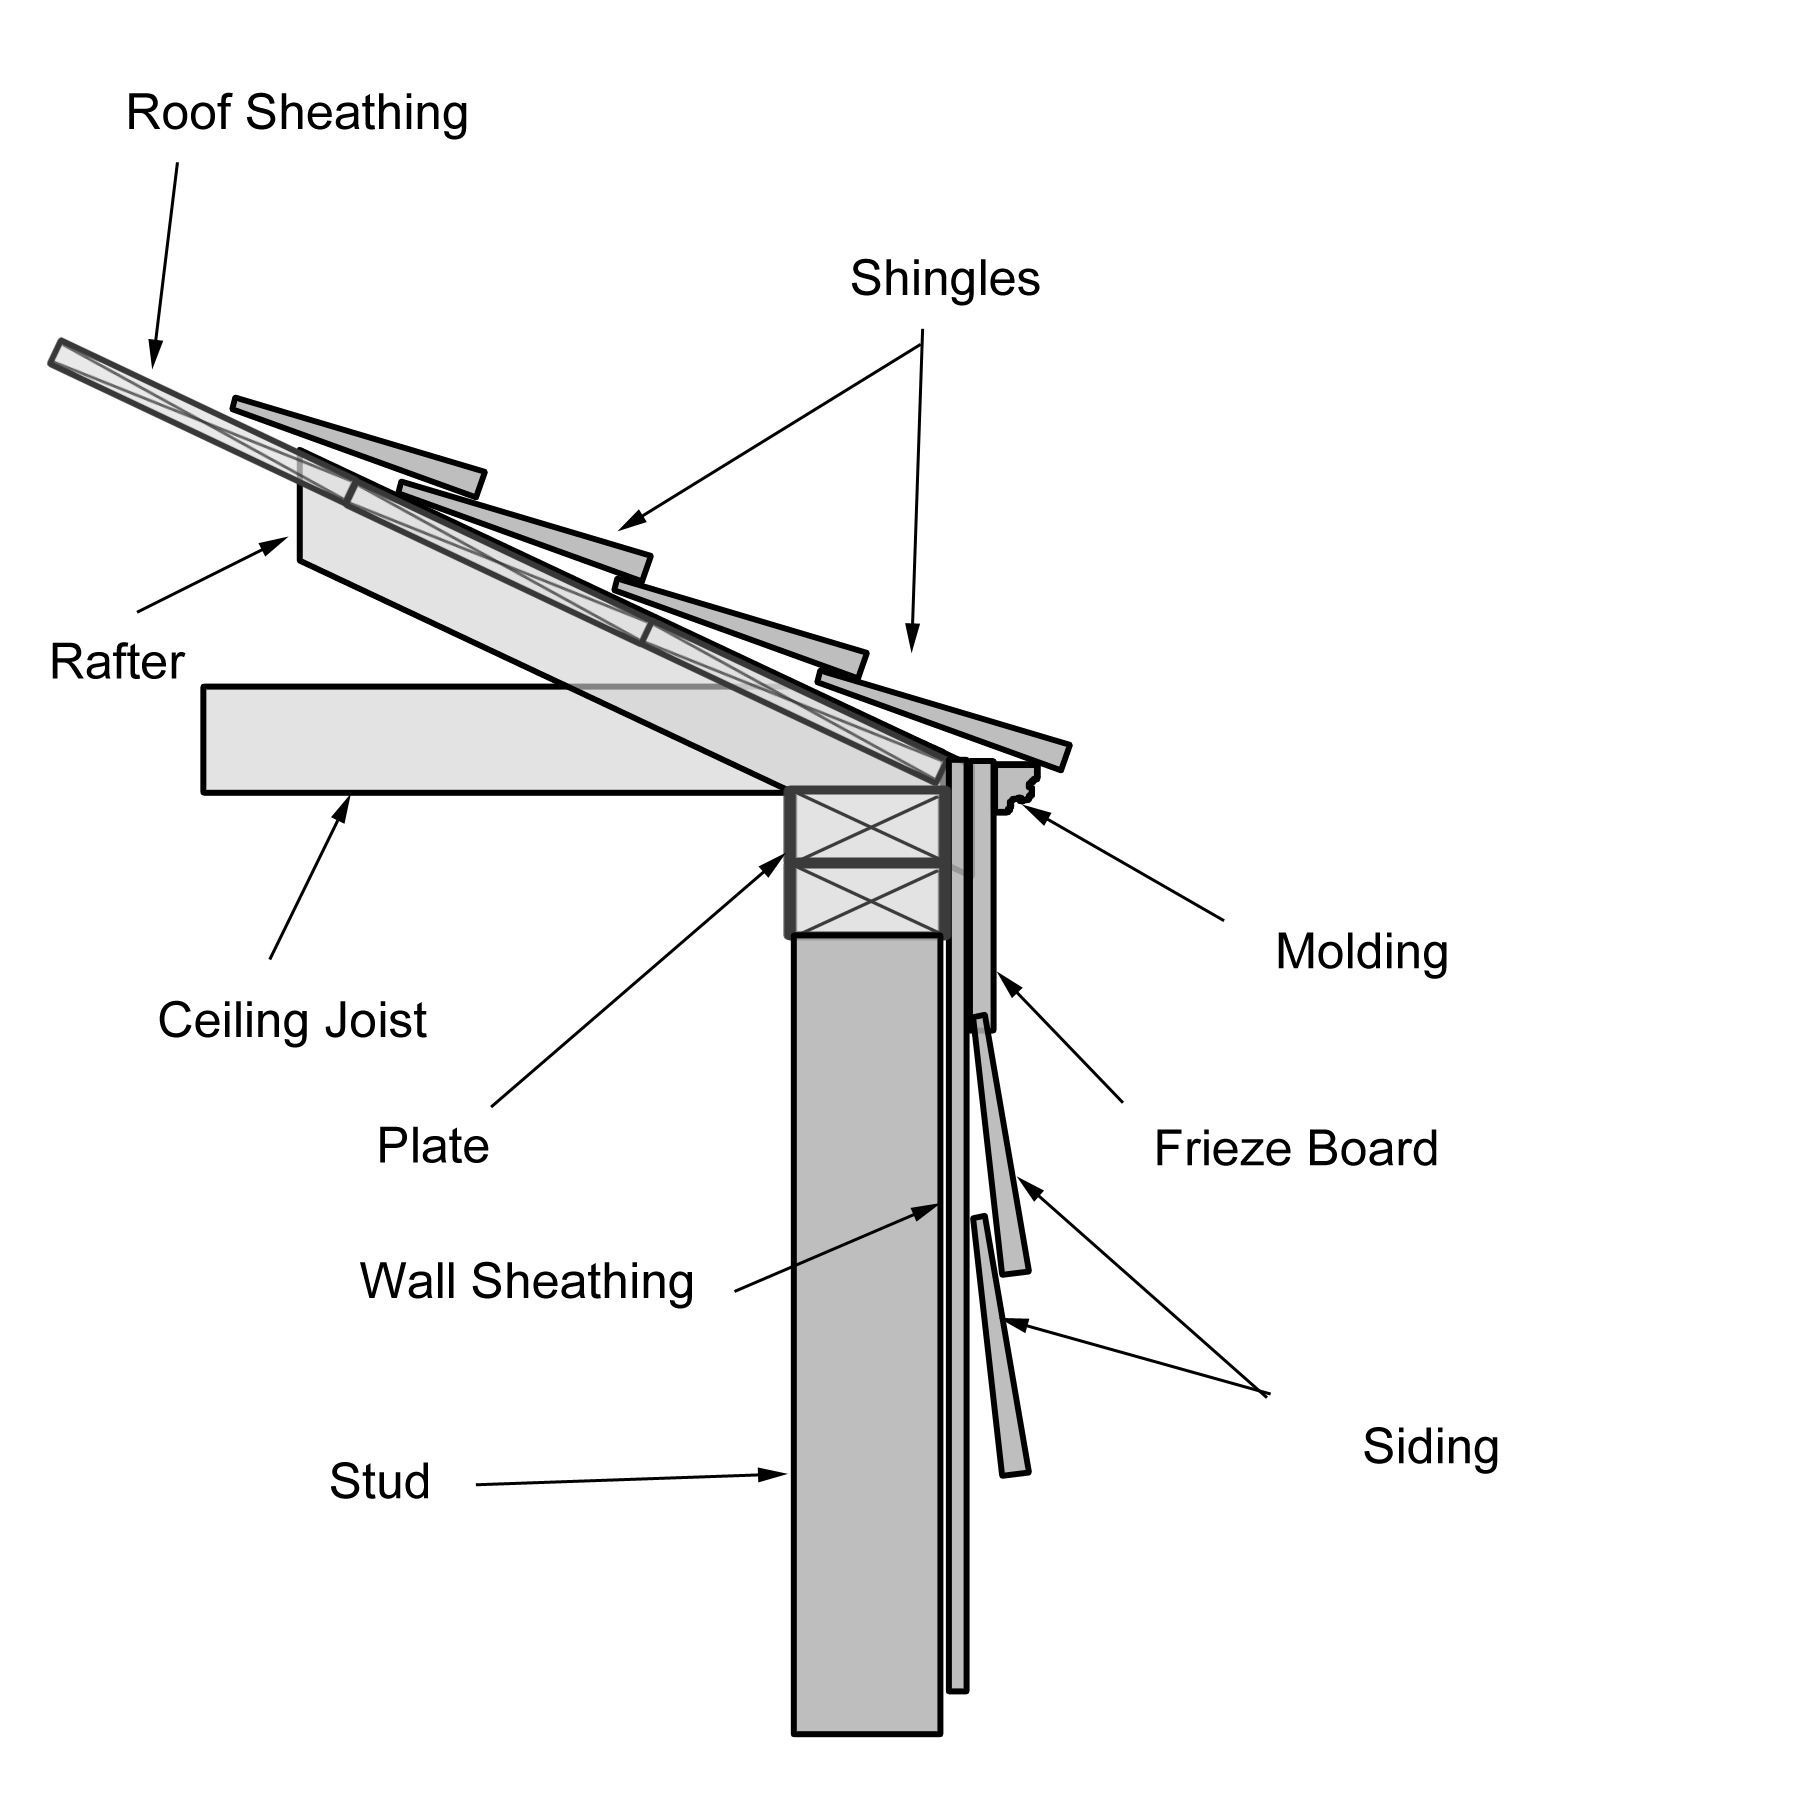 File close wikipedia for What is roof sheathing definition